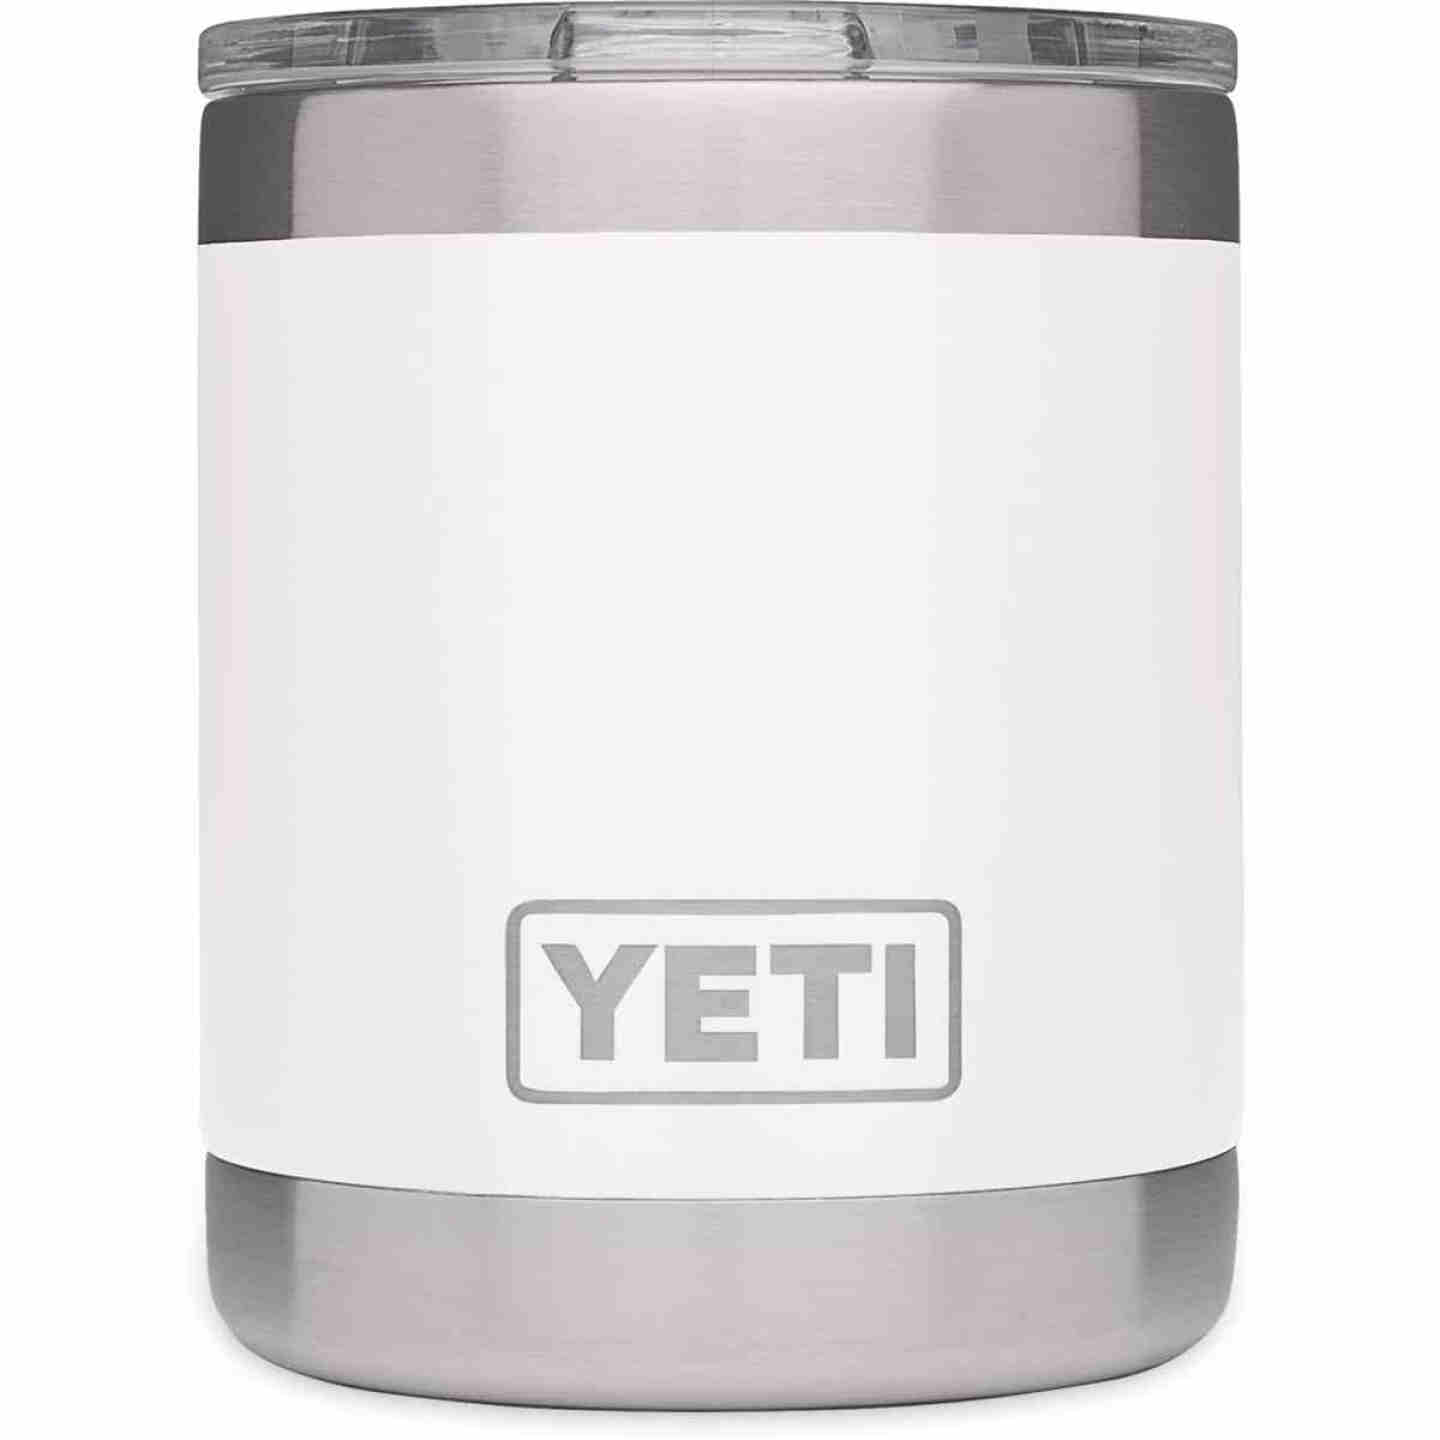 Yeti Rambler Lowball 10 Oz. White Stainless Steel Insulated Tumbler Image 3